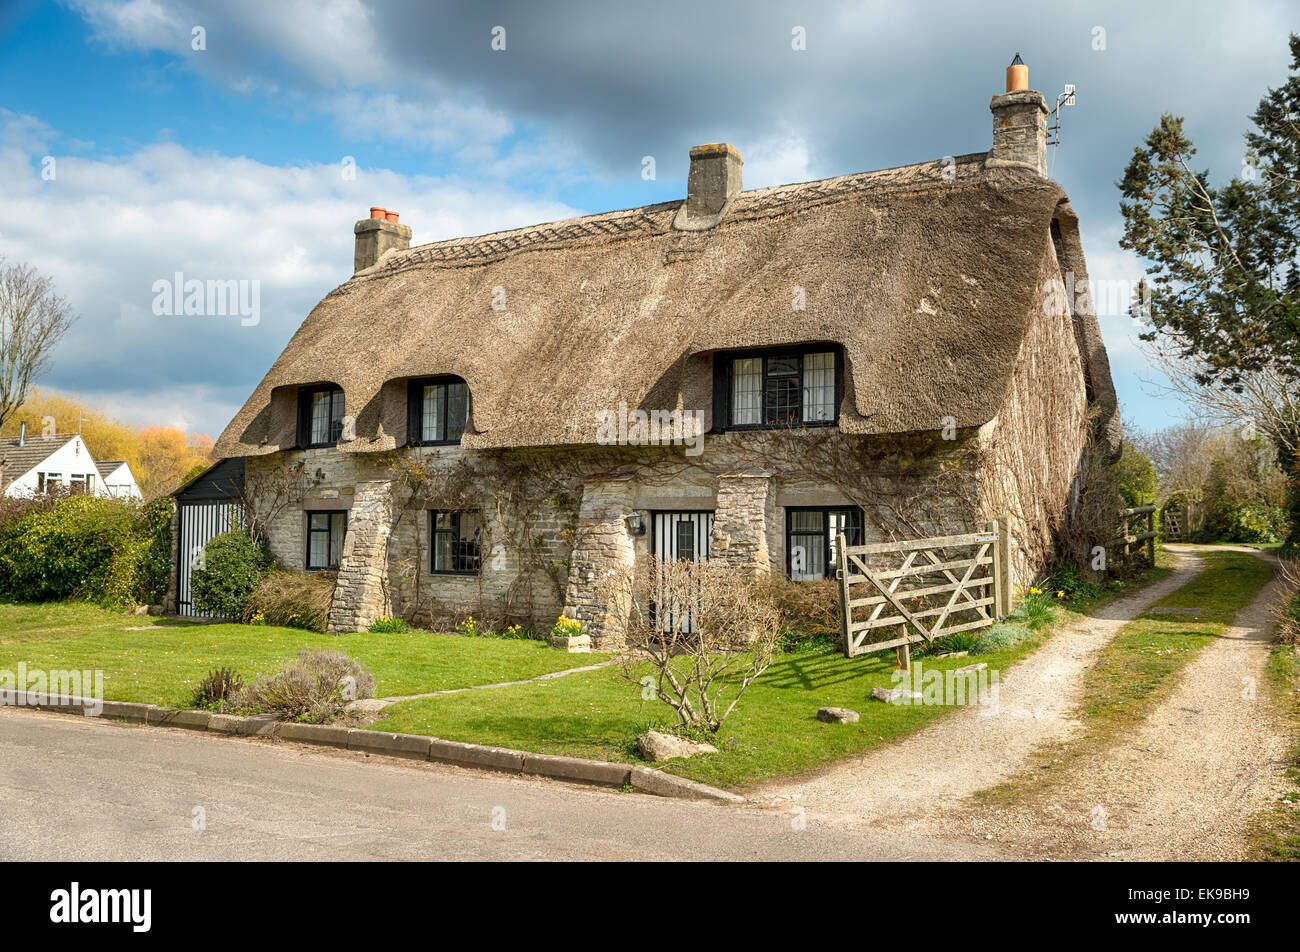 Beautiful thatched cottage at corfe castle village on the purbeck stock photo royalty free - The thatched cottage ...